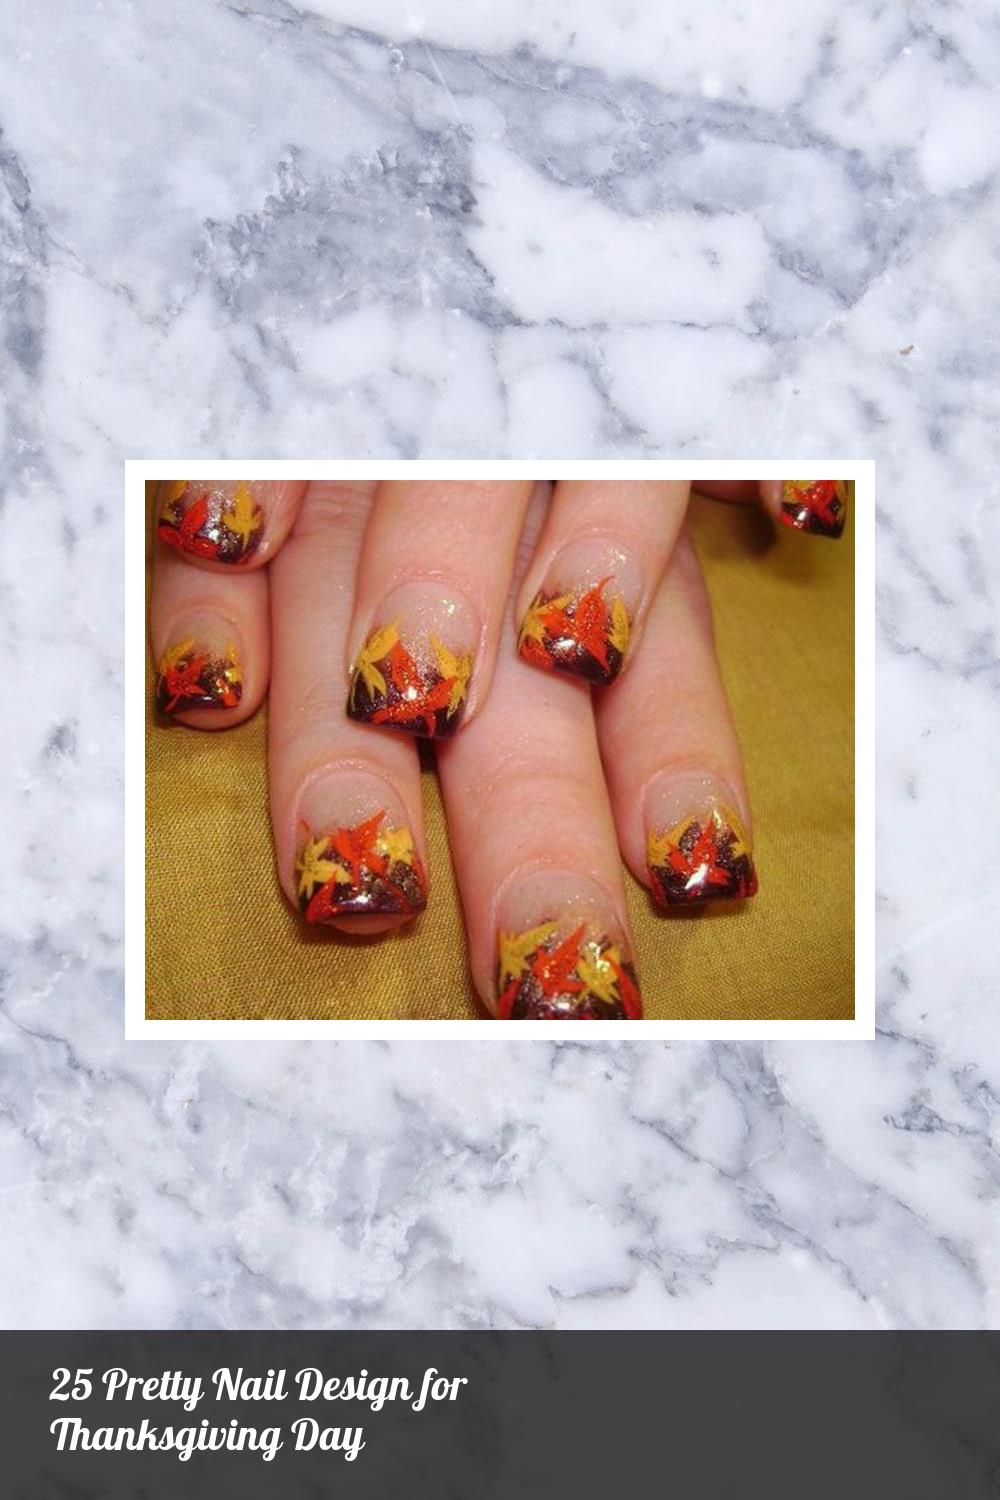 25 Pretty Nail Design for Thanksgiving Day 10